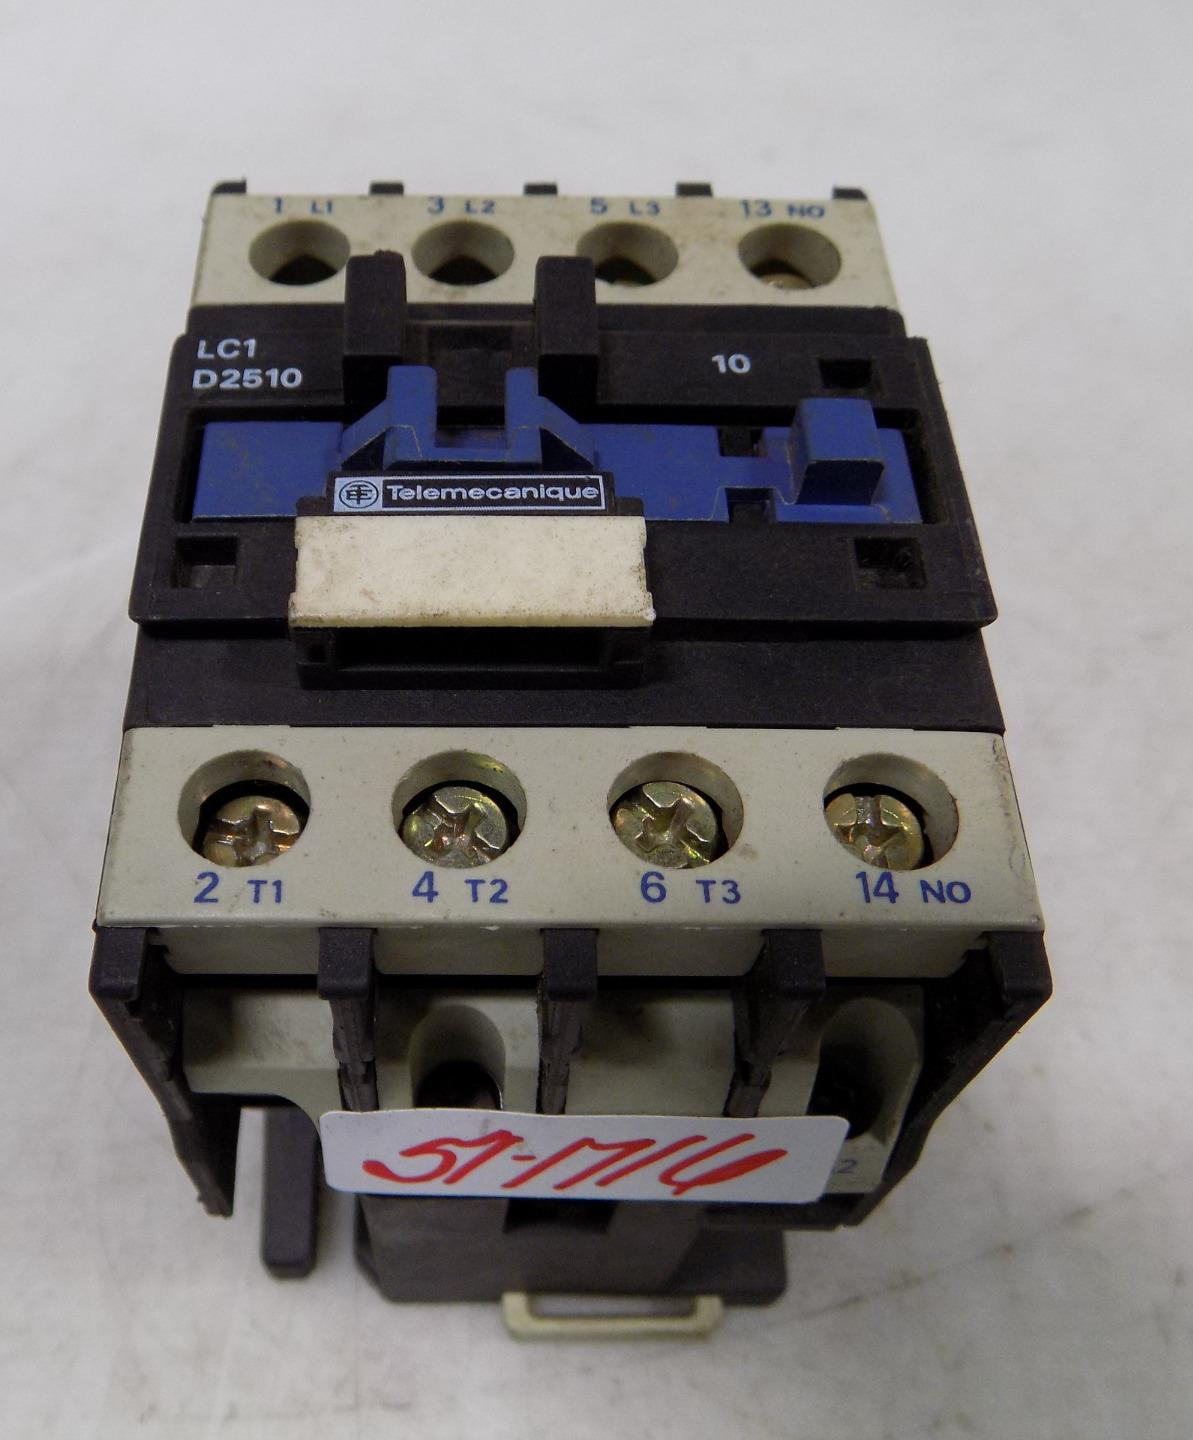 Telemecanique Contactor Wiring Diagram - Wiring Diagrams on